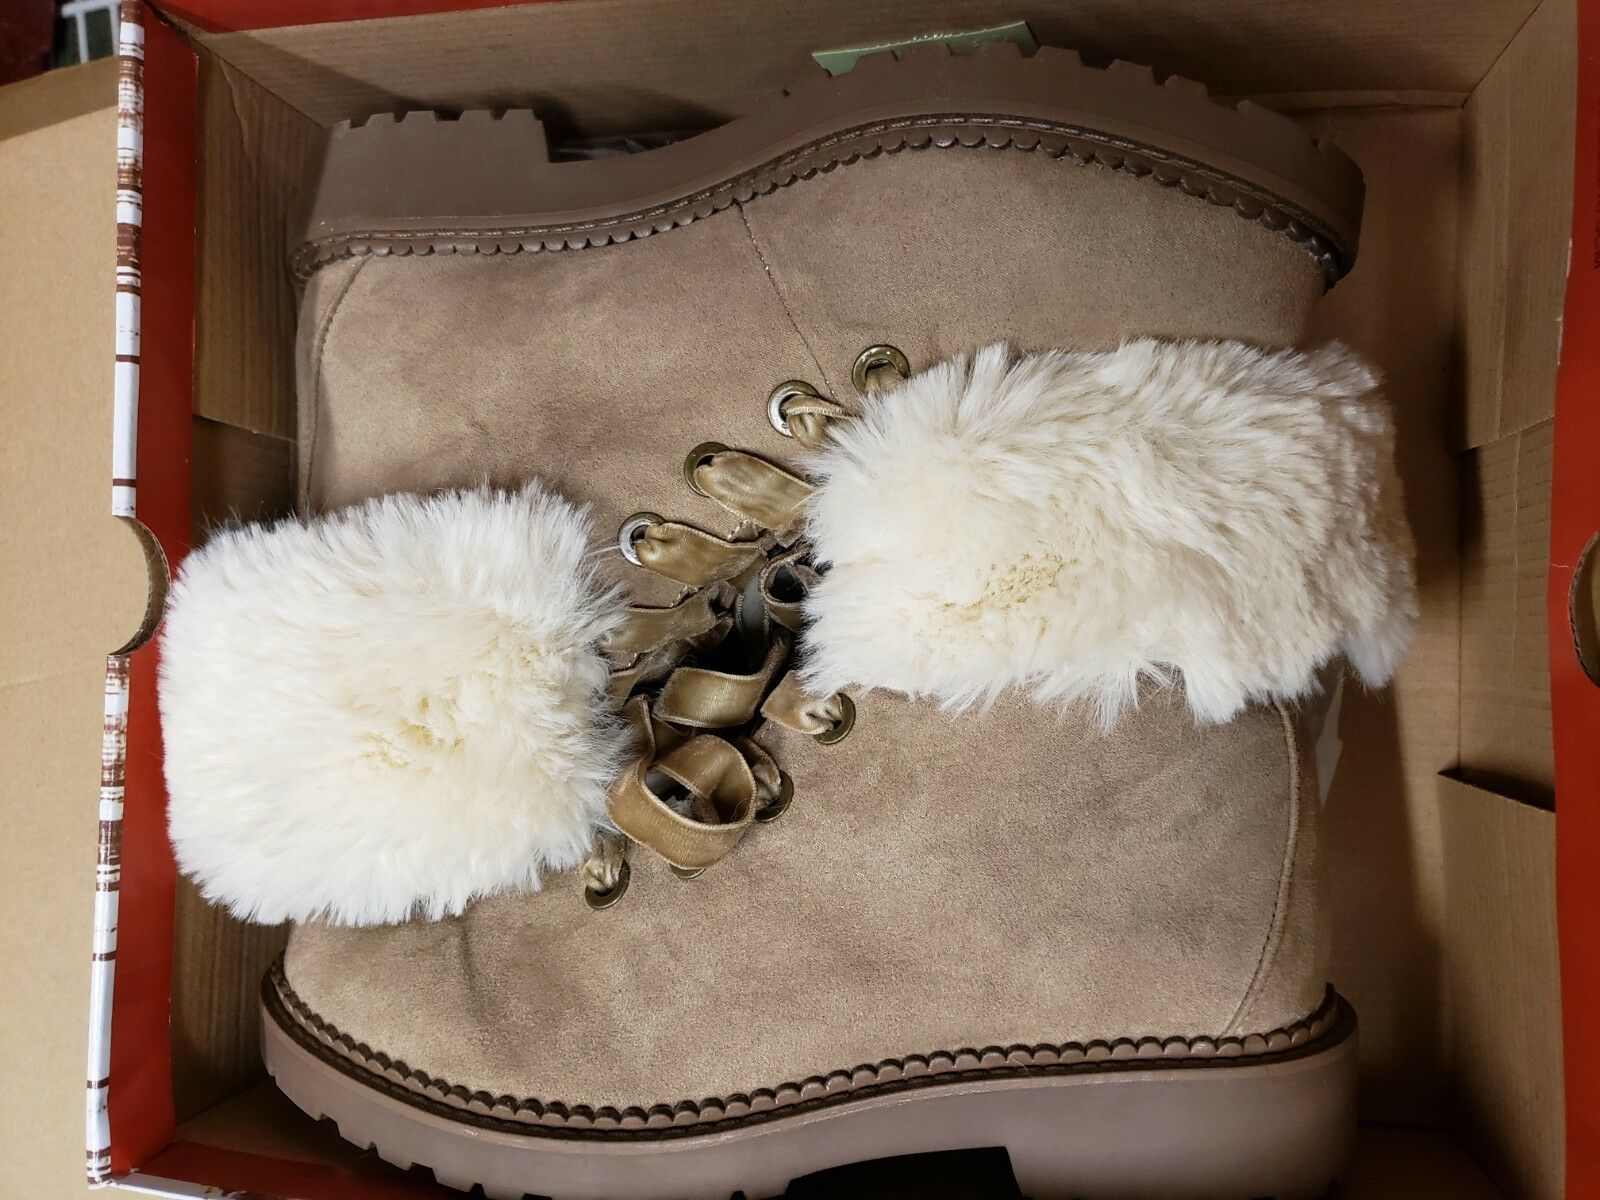 Unionbay Fur boot charlotte UB camel. Size 7